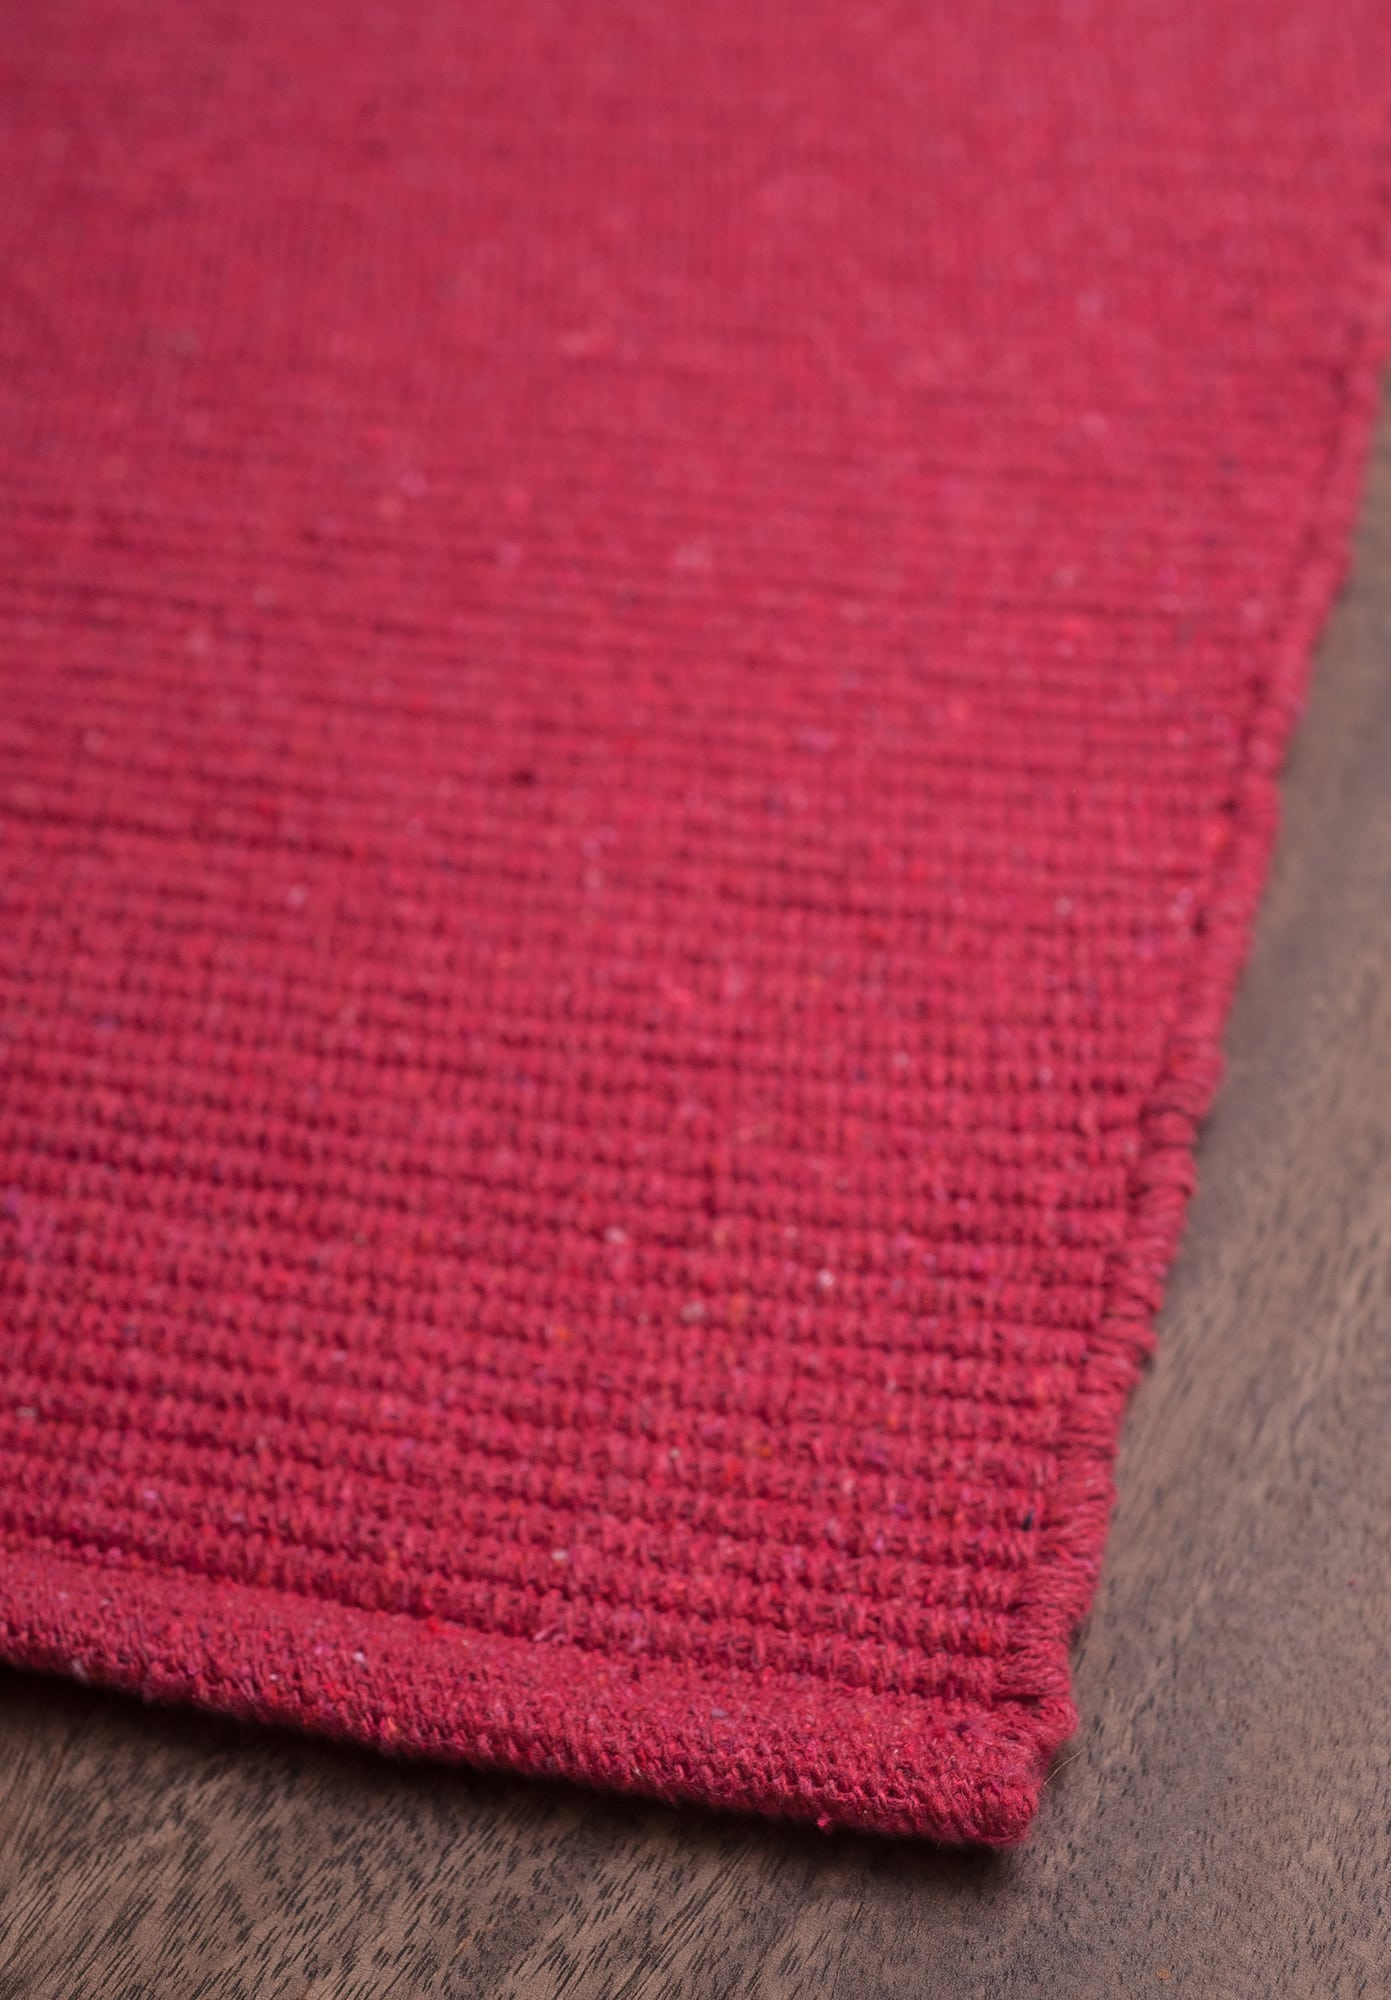 Bright red bathroom rugs - Bright Red Bath Rug Bright Red Rugs For Sale Rugs Xcyyxh Com